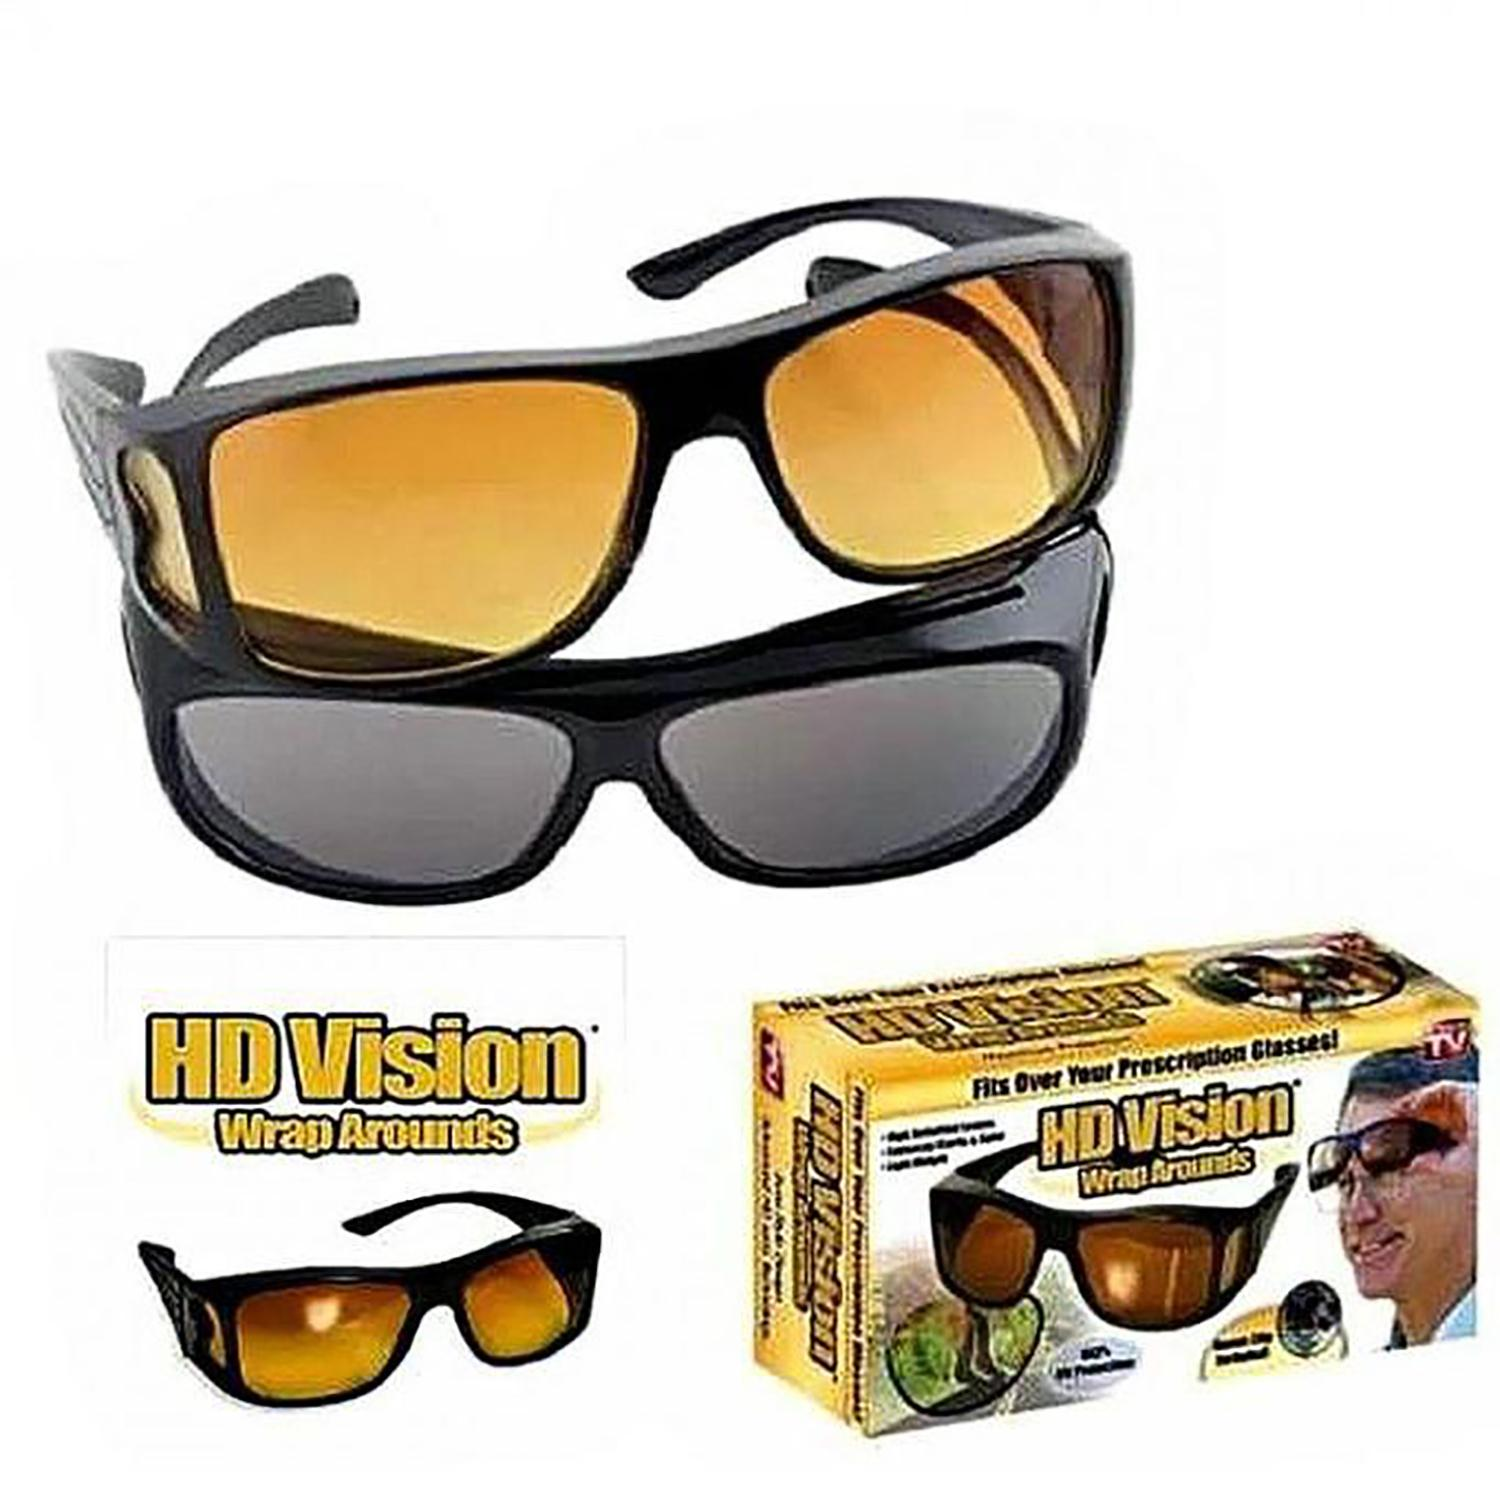 0a03c2bcc97e HD Vision Anti Glare Night View Driving Glasses Wrap Around Sunglasses Set  of 2